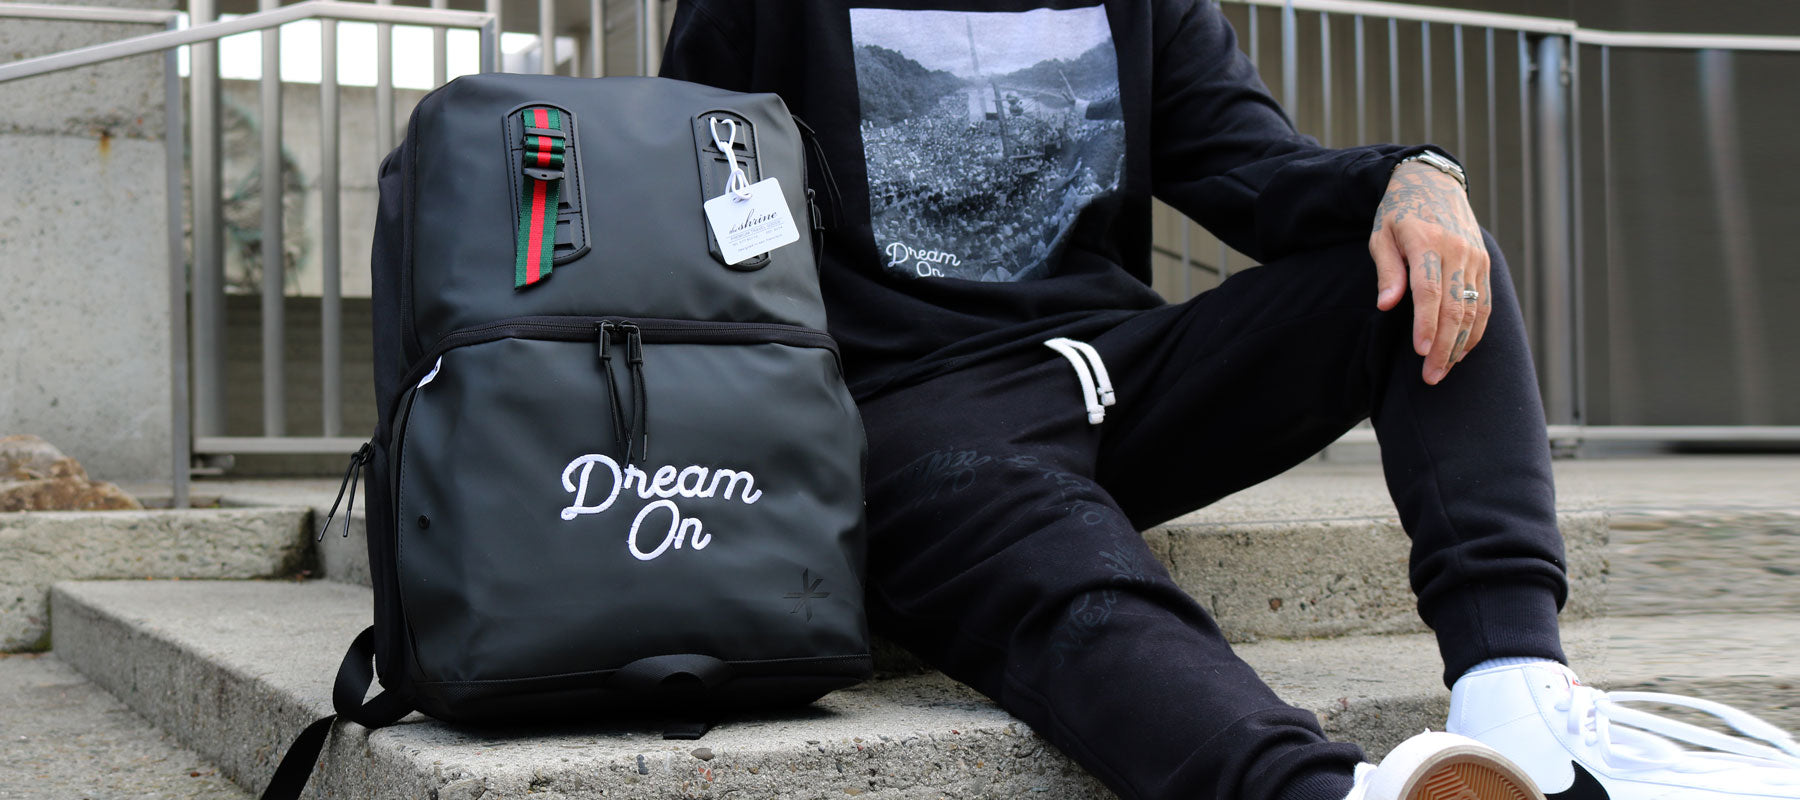 Dream On x The Shrine Co collab MLK 'Dream' Edition pack